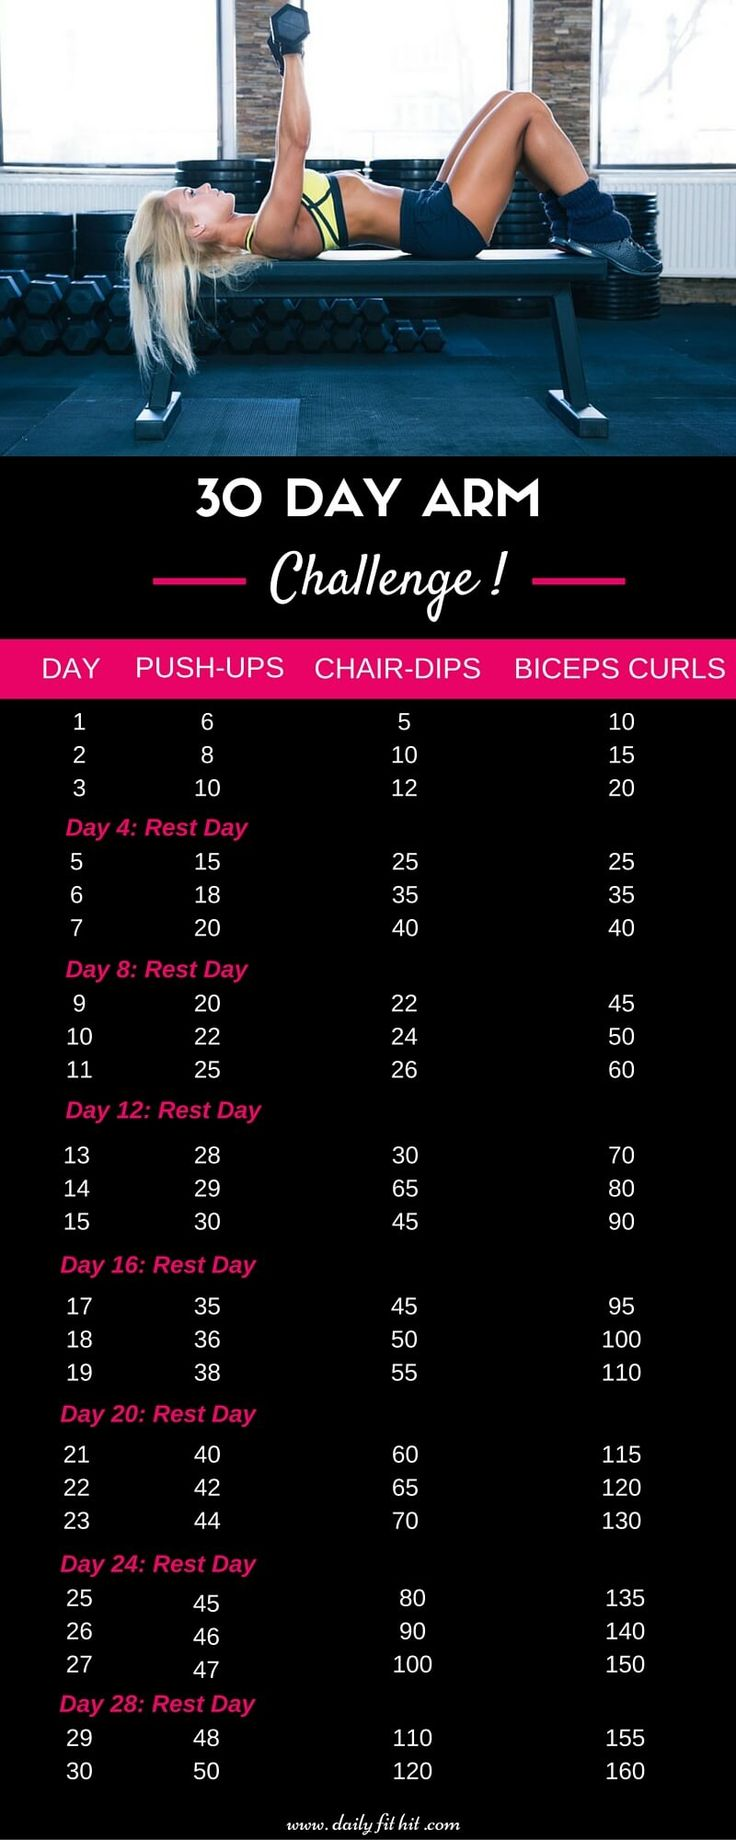 Get ready for a new 30 Day Challenge. This time, we prepared for you a 30 Day Arm Challenge that will strength and tone up your arm muscles to the max.